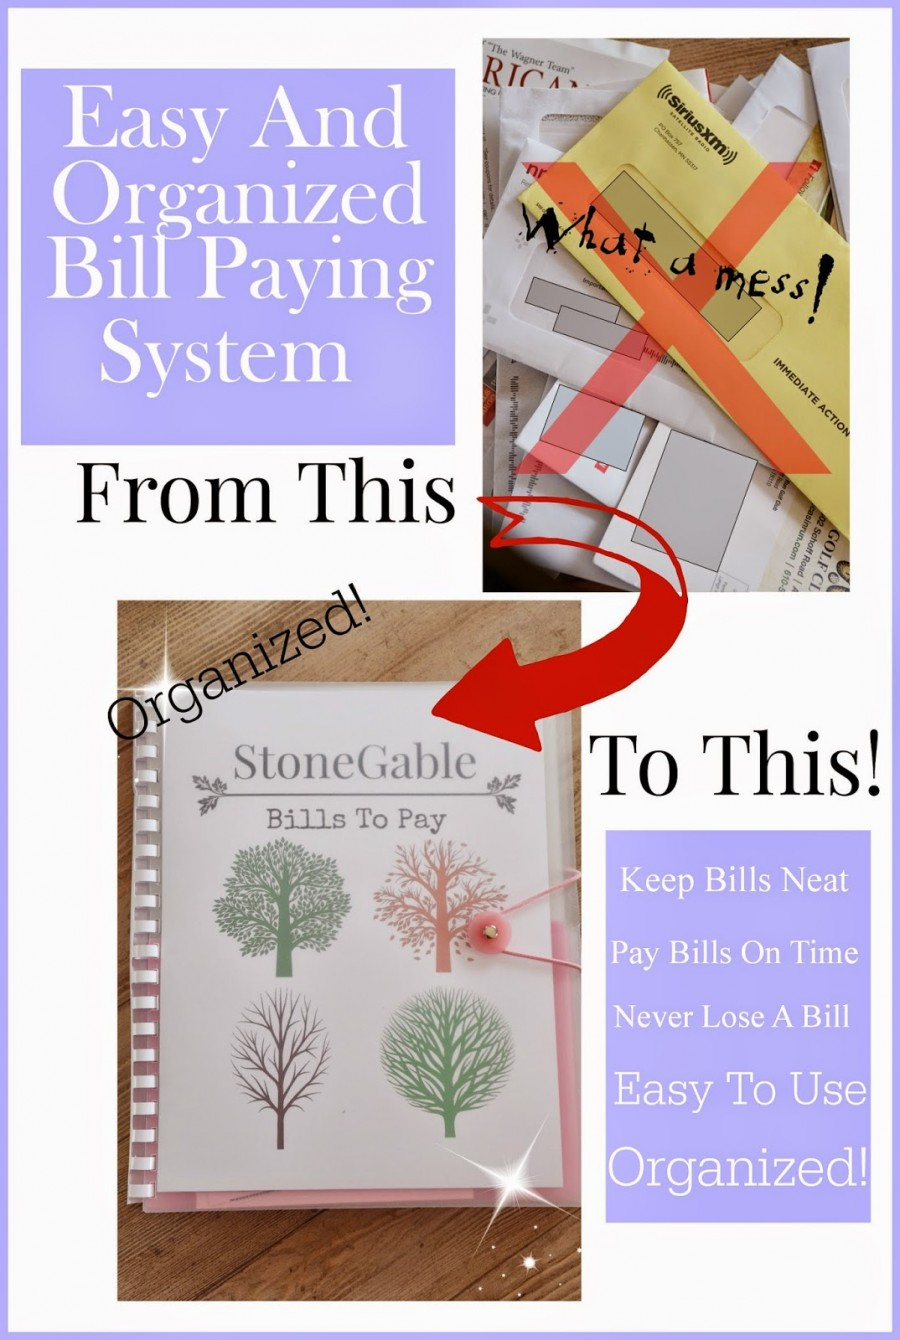 EASY+AND+ORGANIZED+BILL+PAYING+SYSTEM-TITLE+PAGE-stonegableblog.com_